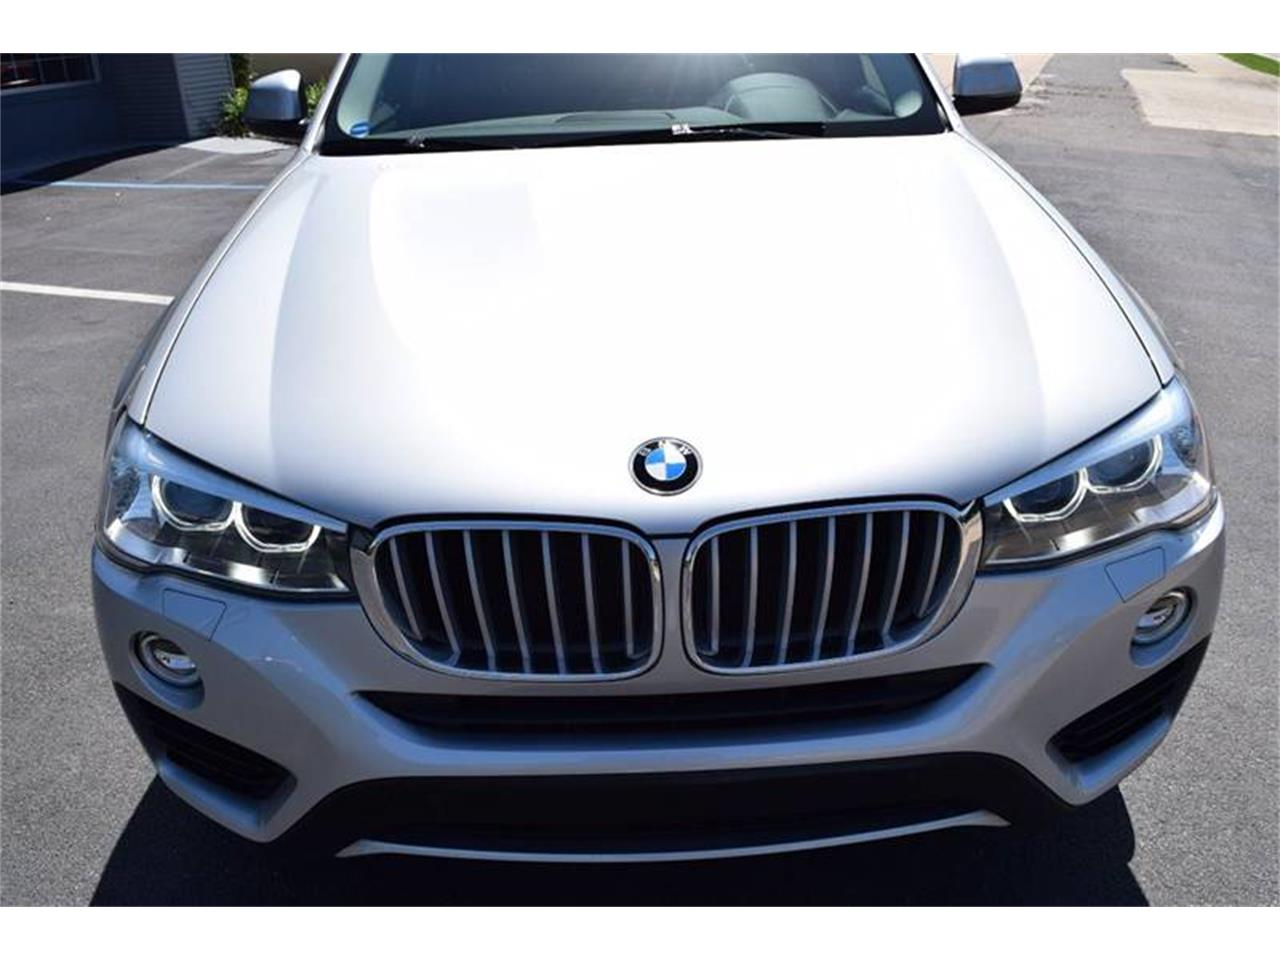 Large Picture of 2016 BMW X4 located in Mississippi - $24,900.00 Offered by Gulf Coast Exotic Auto - QKEO